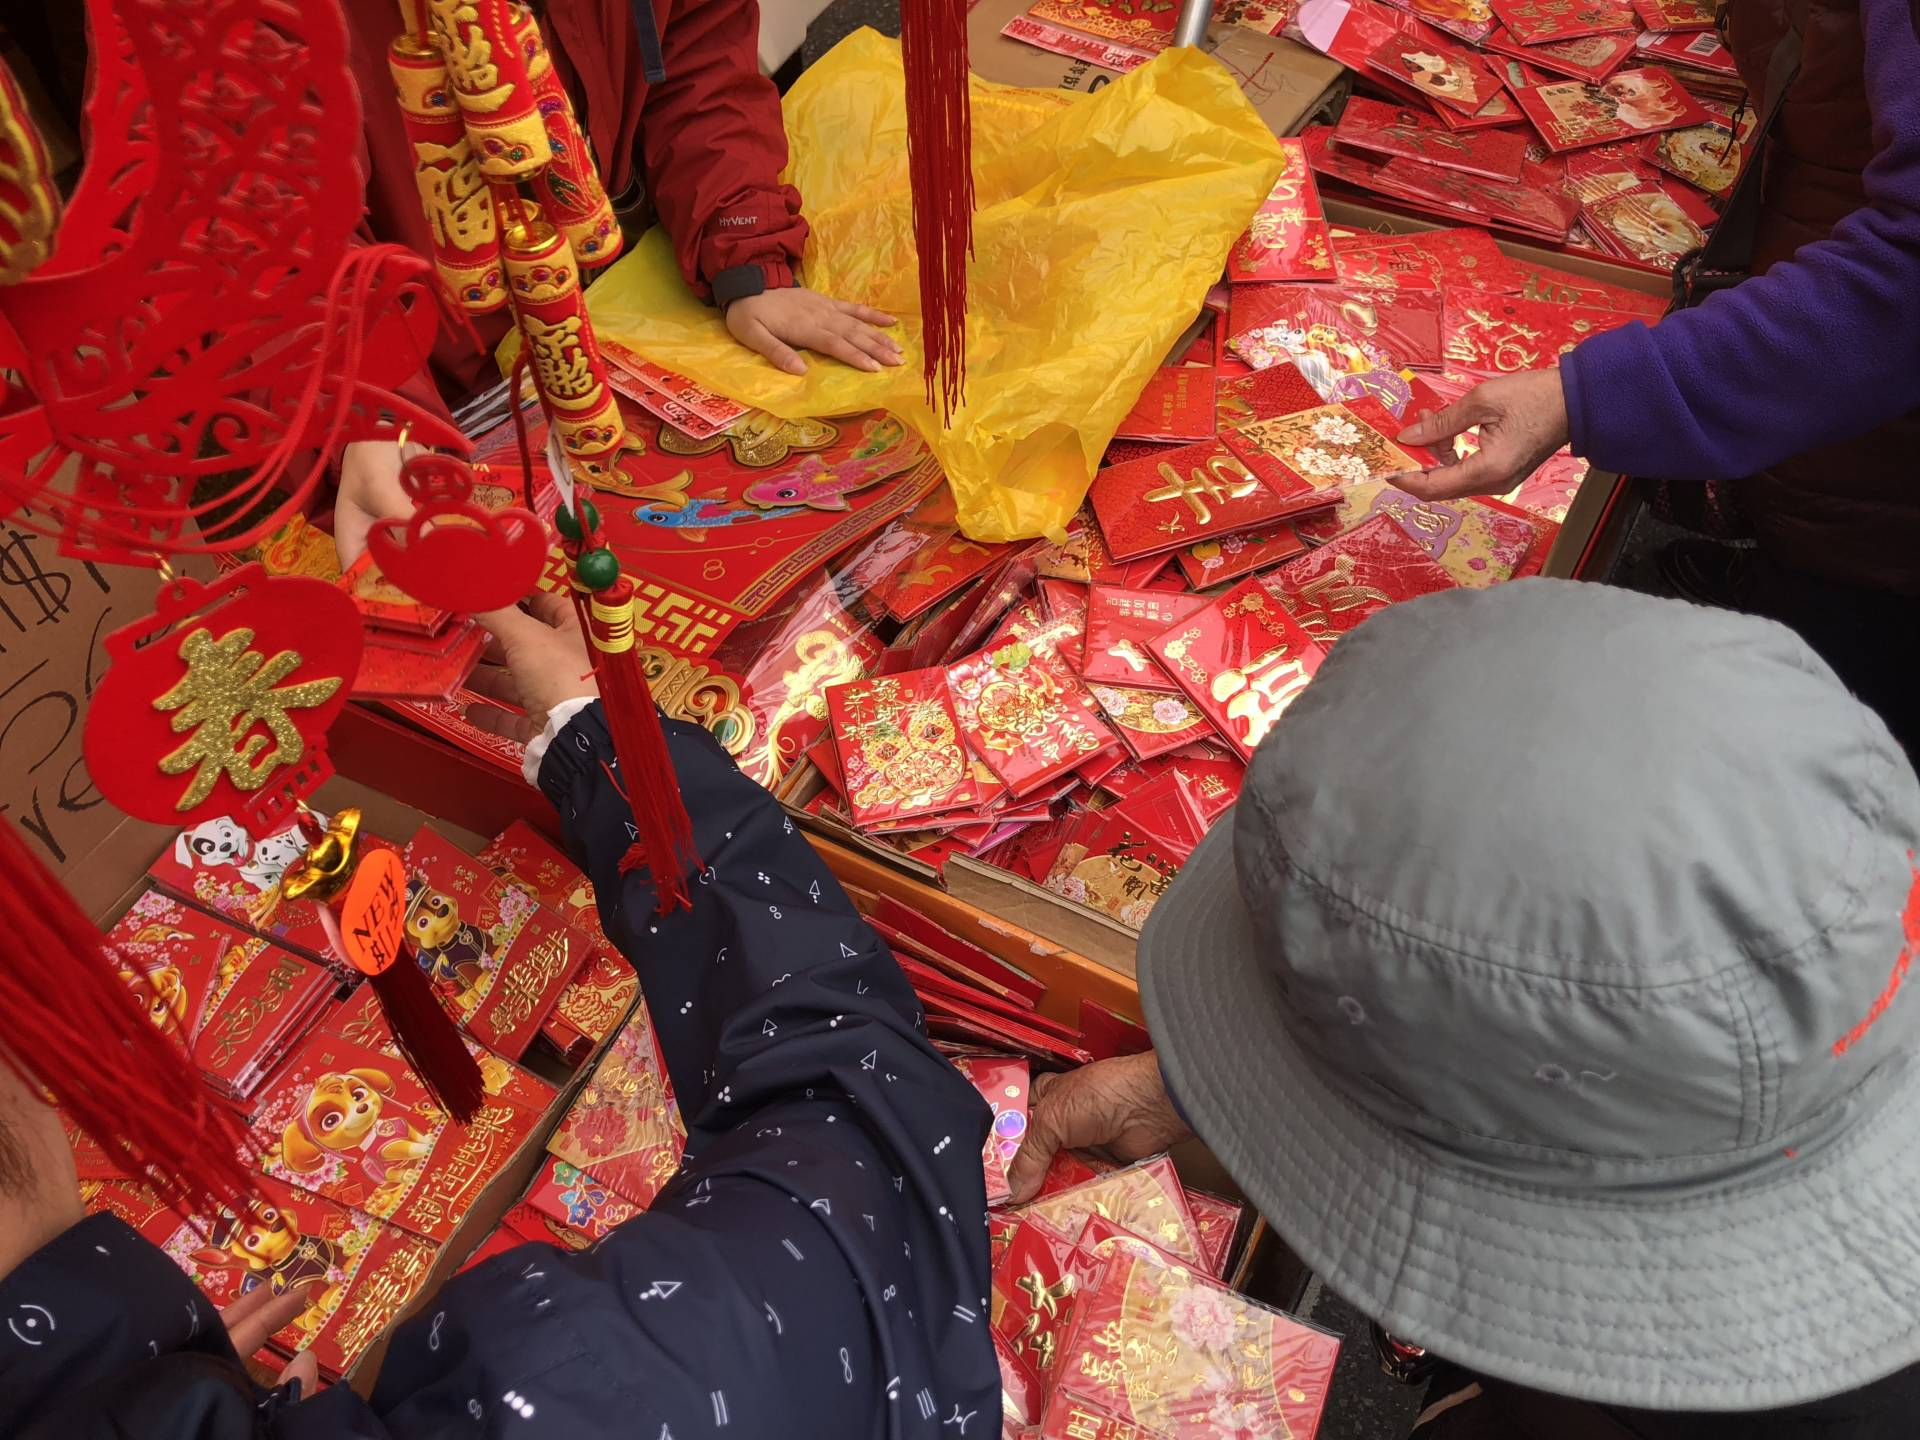 Elderly ladies pick over red envelopes at the Chinese New Year Flower Market Fair. The market is held before Chinese New Year proper in order for people to buy flowers, fruit, candy and plants before the new lunar year.